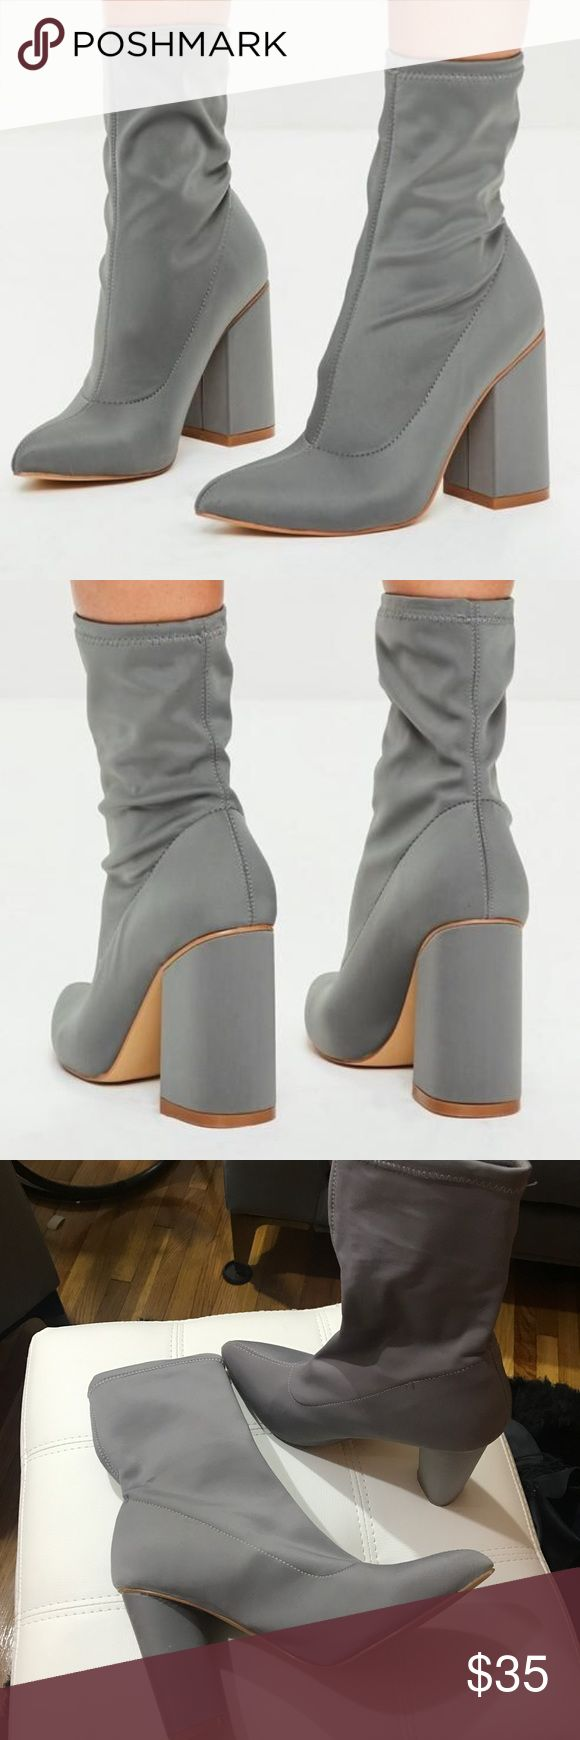 "Missguided Grey Block Heel Sock Booties Missguided all grey neoprene fabric sock style heeled booties! US size 8 - sold out on Missguided in this size! Approximately a 4"" block heel Worn only once! Missguided Shoes Ankle Boots & Booties"